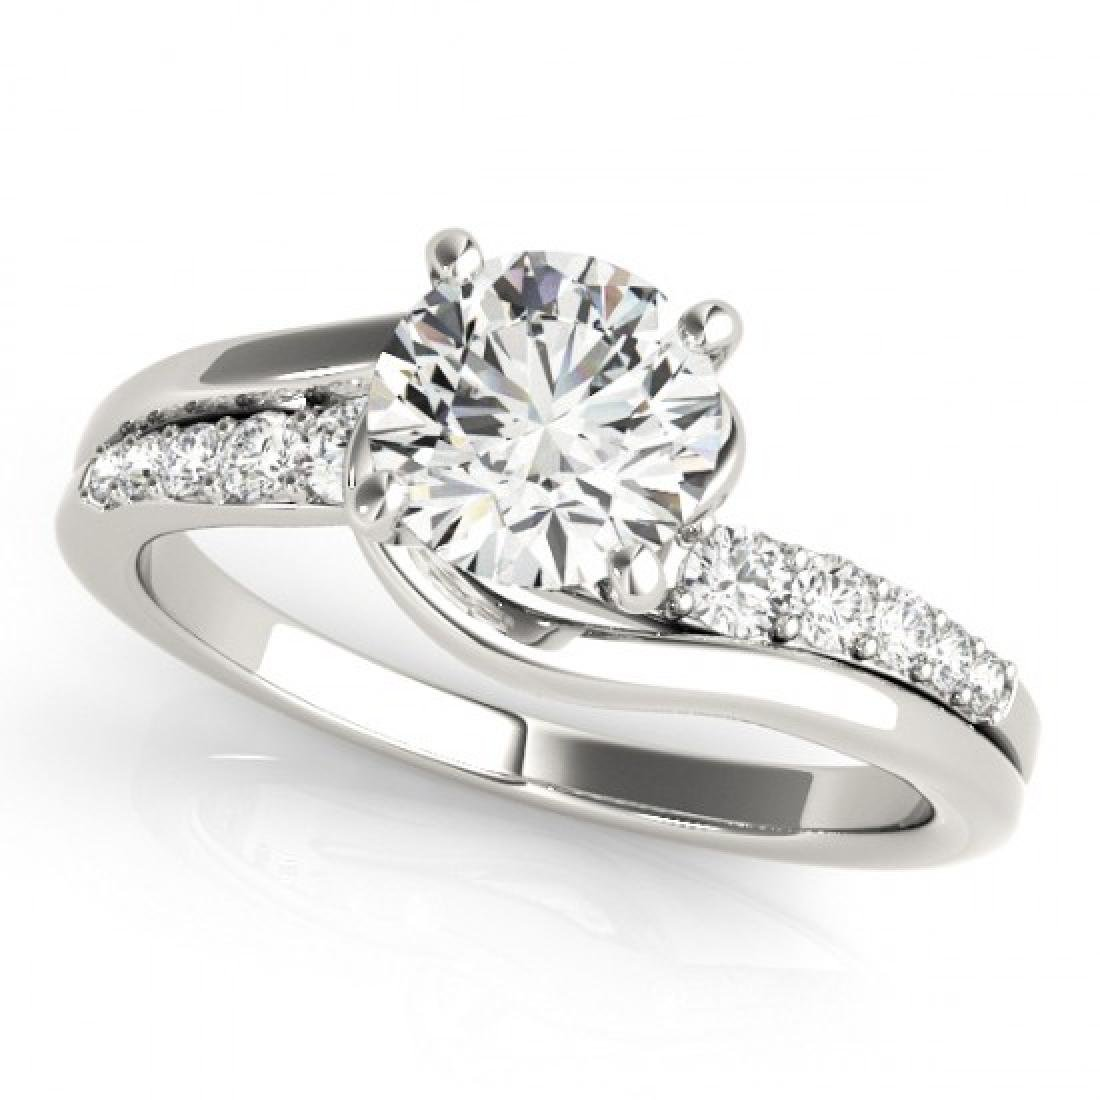 0.81 CTW Certified VS/SI Diamond Bypass Solitaire Ring